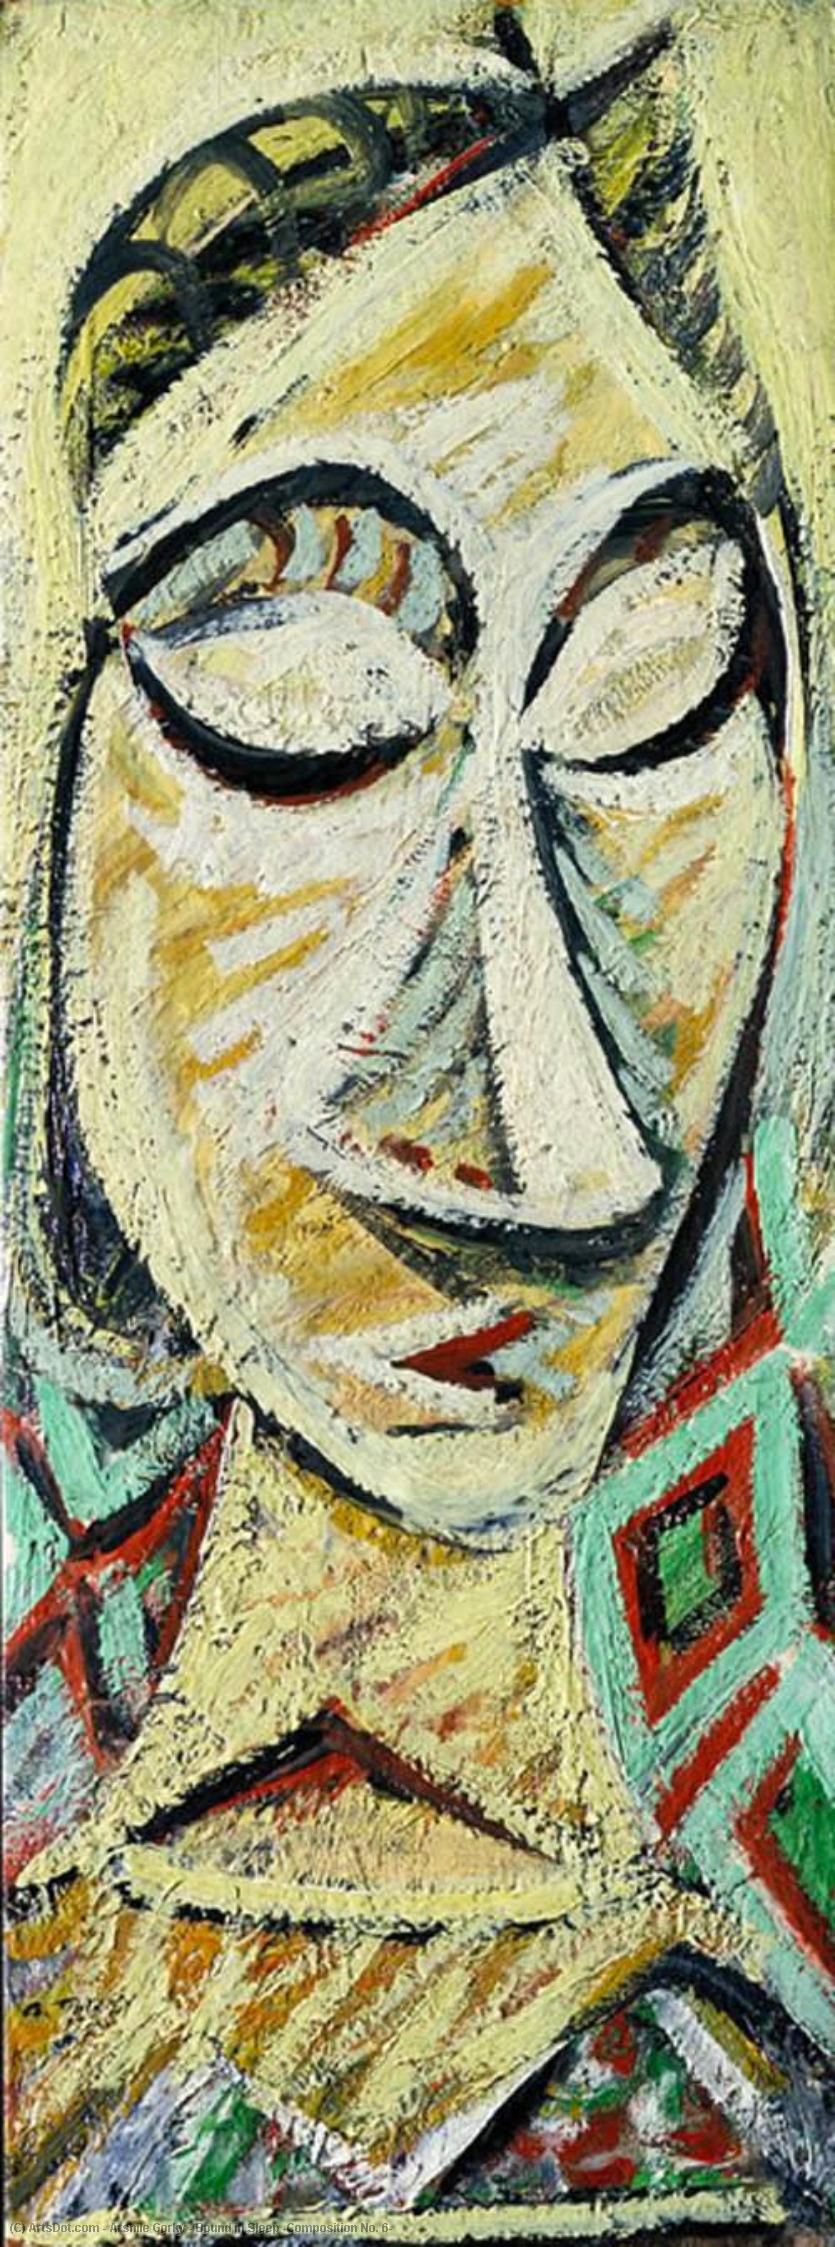 Wikioo.org - The Encyclopedia of Fine Arts - Painting, Artwork by Arshile Gorky - Bound in Sleep (Composition No. 6)